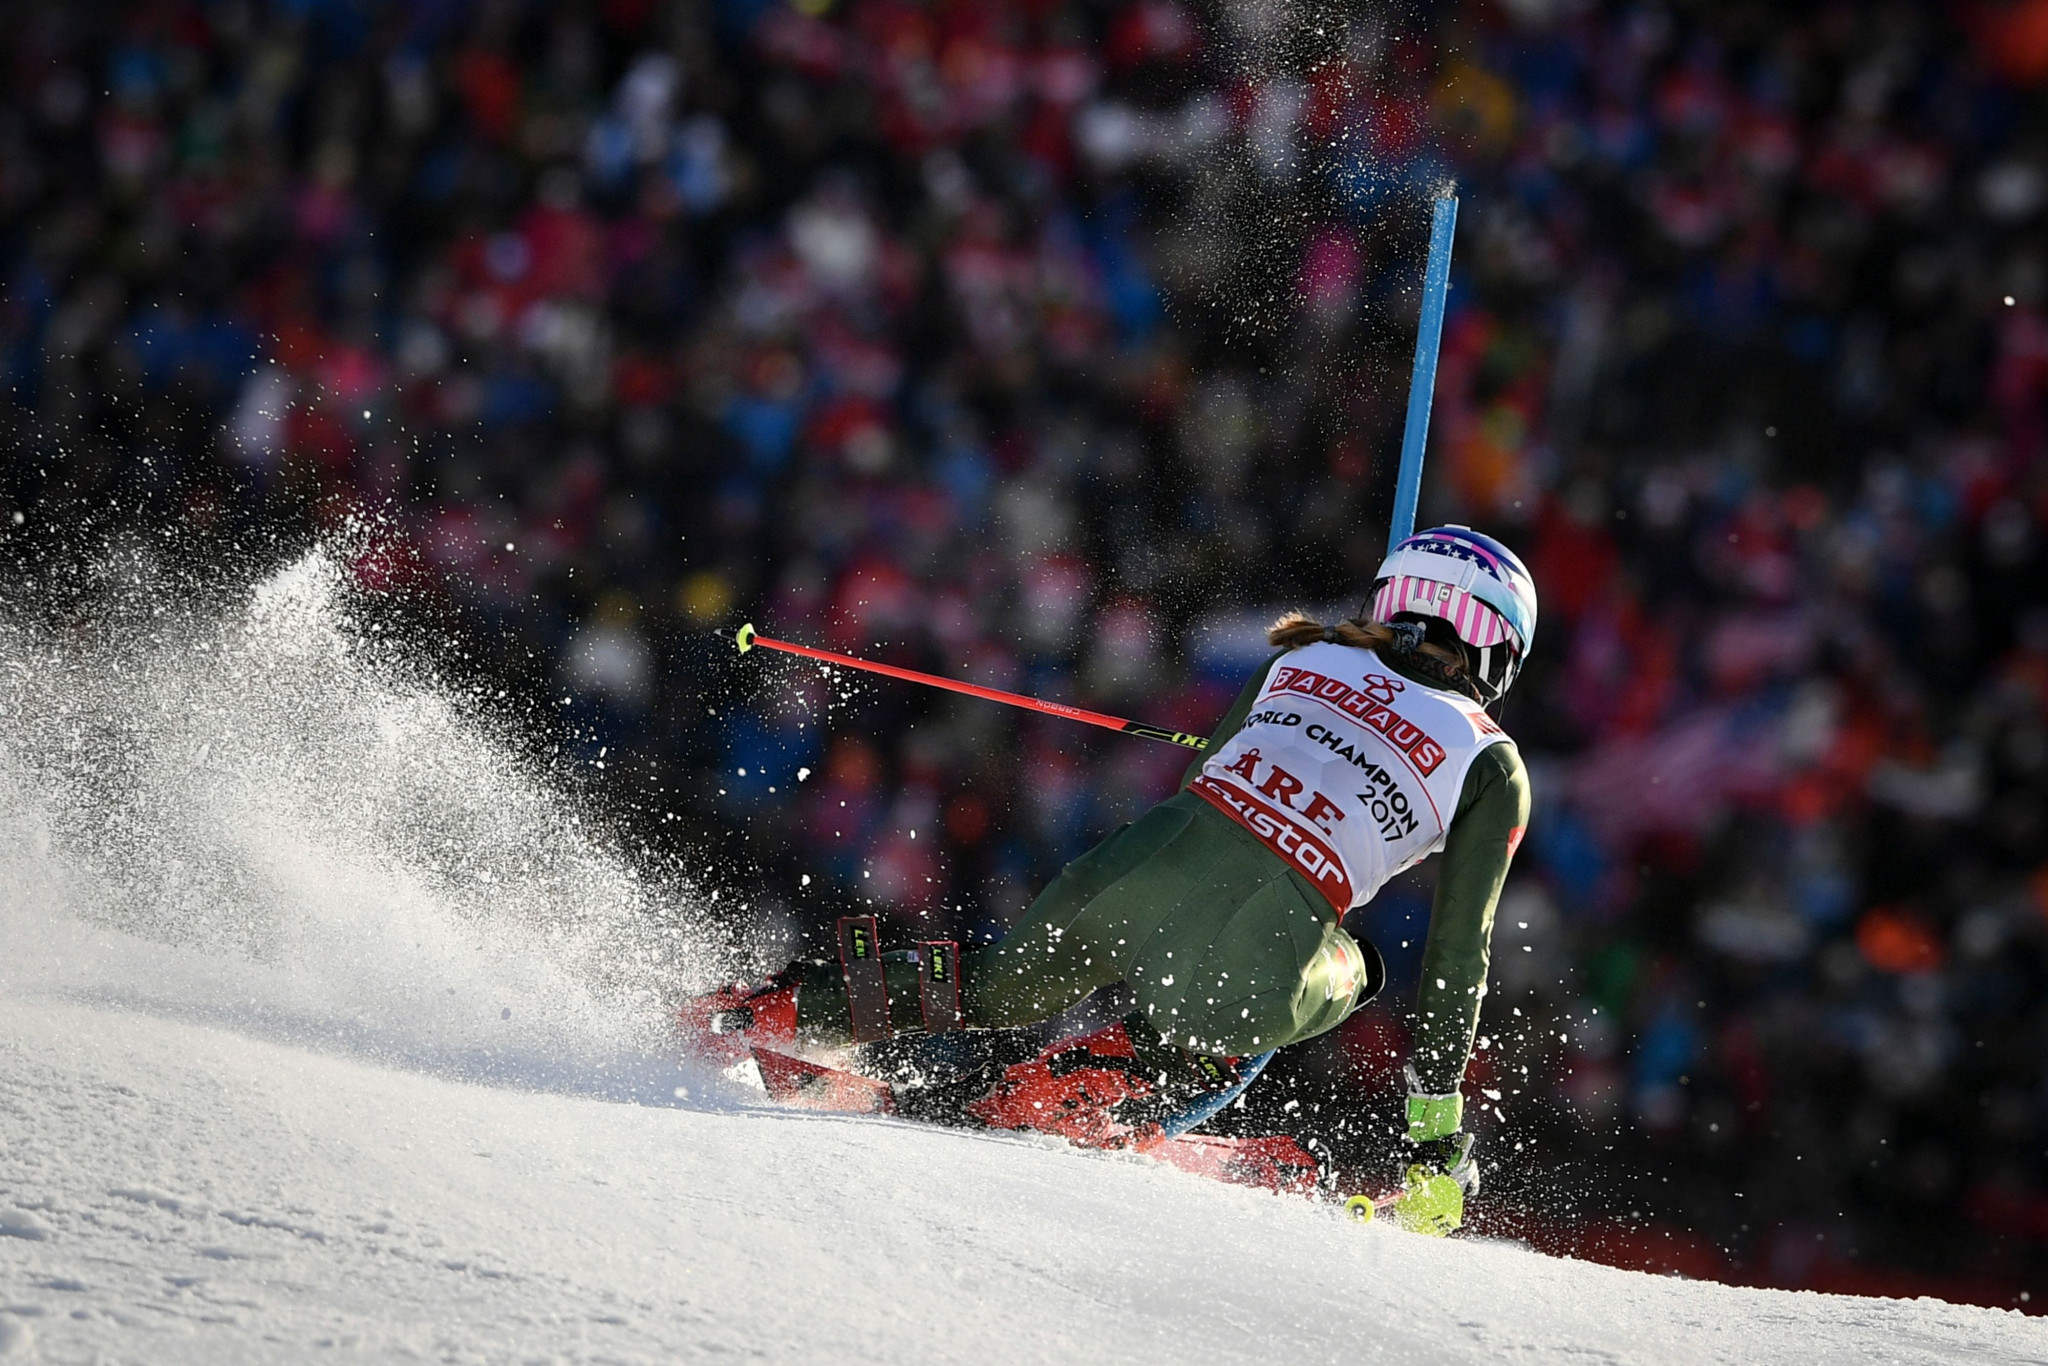 Mikaela Shiffrin impressed in the second run to move to the top of the standings ©Getty Images